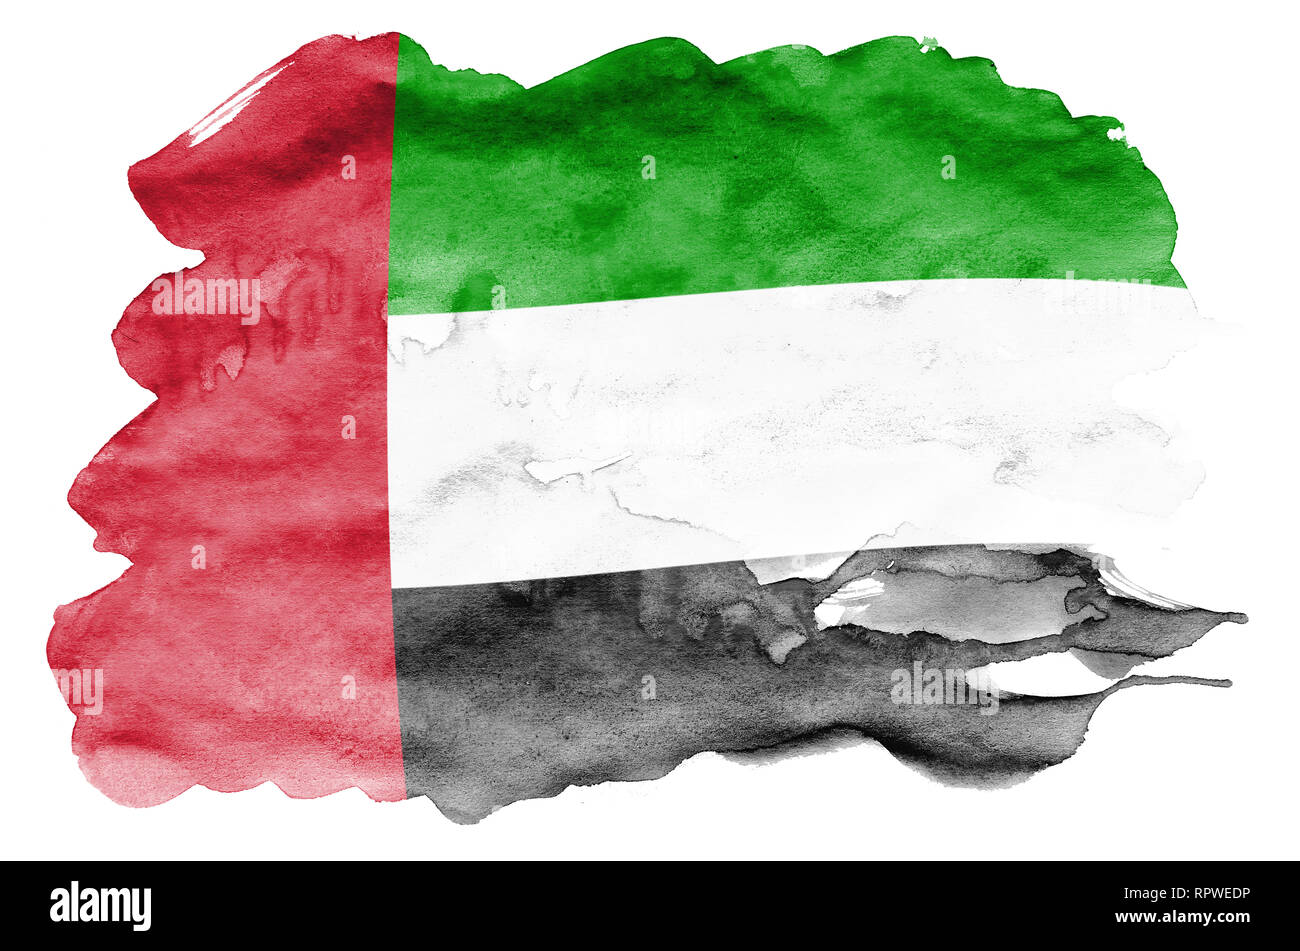 United Arab Emirates flag  is depicted in liquid watercolor style isolated on white background. Careless paint shading with image of national flag. In Stock Photo